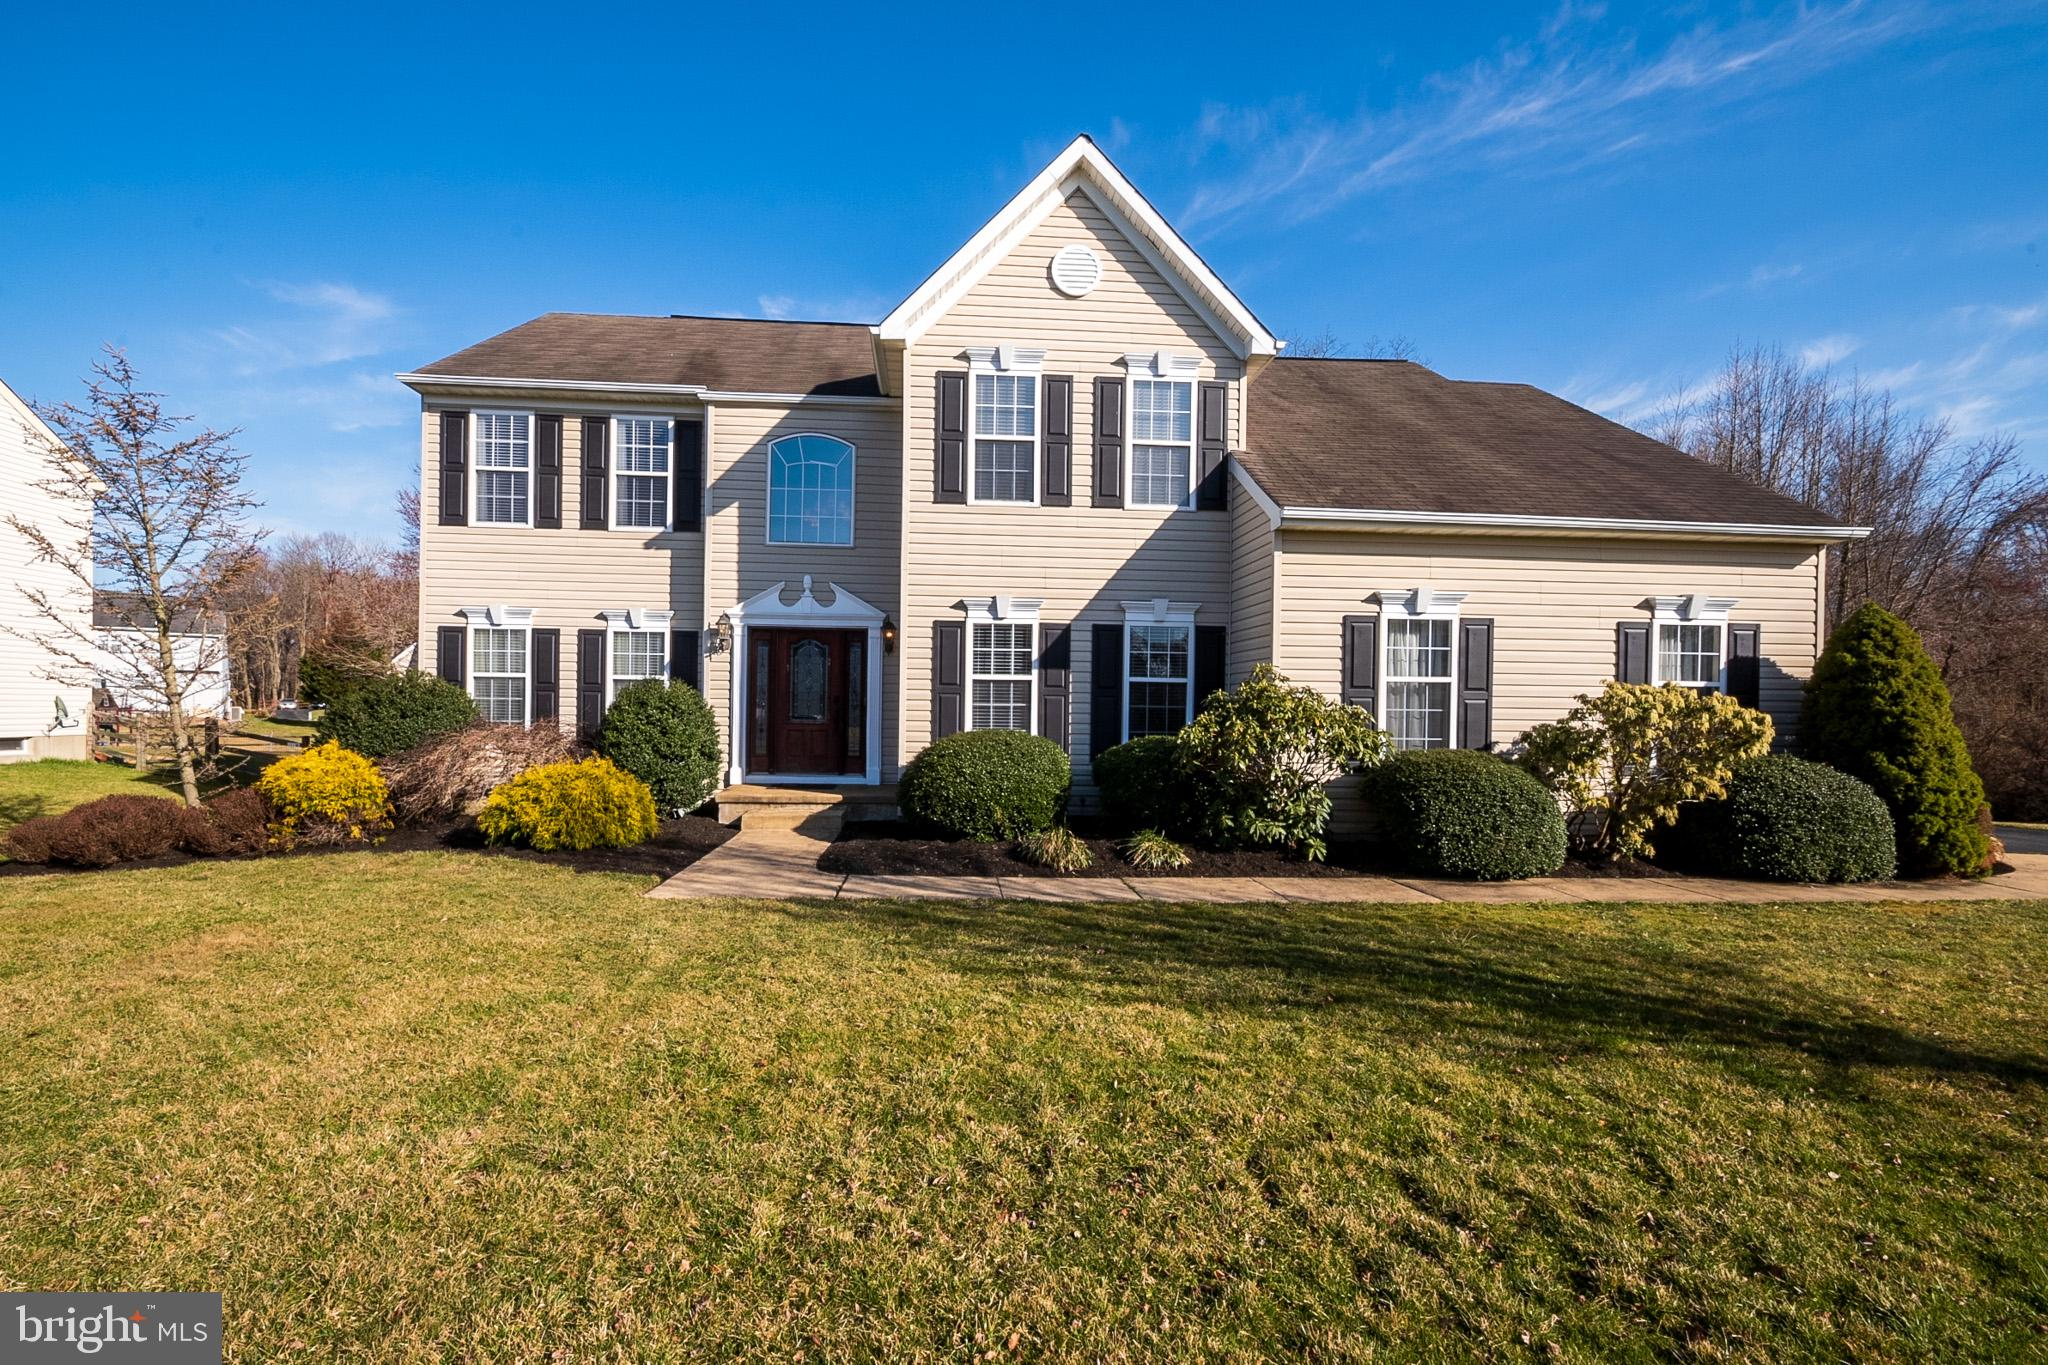 Welcome to 7 Whirlaway Dr in the award winning Appoquinimink school district! This extremely well cared for two story colonial home is now available for its new owner. As you pull up to the home, you will notice the ample parking, two car turned garage, and the freshly manicured landscaping. Entering the home into the two story foyer you will be greeted with true pride of ownership, fresh paint throughout, and tastefully updated luxury vinyl plank flooring that runs throughout the main level. The home features generous sized living and dining rooms right when you enter through the front door. And have you seen this kitchen? The current owner did not skip a step when doing this renovation. The kitchen features new white and grey cabinets, stylish quartz countertops and glass back splash, updated stainless steel appliances, updated fixtures, and a white farmhouse sink. The kitchen opens perfectly to the eat in area and the main family room. The family room features a vaulted two story ceiling, a gas fireplace, and boosts natural lighting! The main level also provides a secluded office space great for working at home, a sizeable laundry room, and an updated half bath. There are two staircases leading to the second floor which features four bedrooms and two full bathrooms. The ample sized main bedroom includes a walk in closet and a private four piece bathroom with a soaking tub, shower stall, and a dual vanity. There are three more generous sized bedrooms and a shared hallway bath to compete the second floor. Now, we are getting to my favorite features which are the secluded back yard space, the screened porch, and the newly expanded deck (2020) that make for great entertaining nights and BBQ's. Continuing with the attractive attributes, this home comes with an updated HVAC unit (2019) and an updated water heater (2020). This home truly has it all and you don't want to miss your chance to own it! Visit the open house Saturday March 27th from 12-2pm or schedule your tou